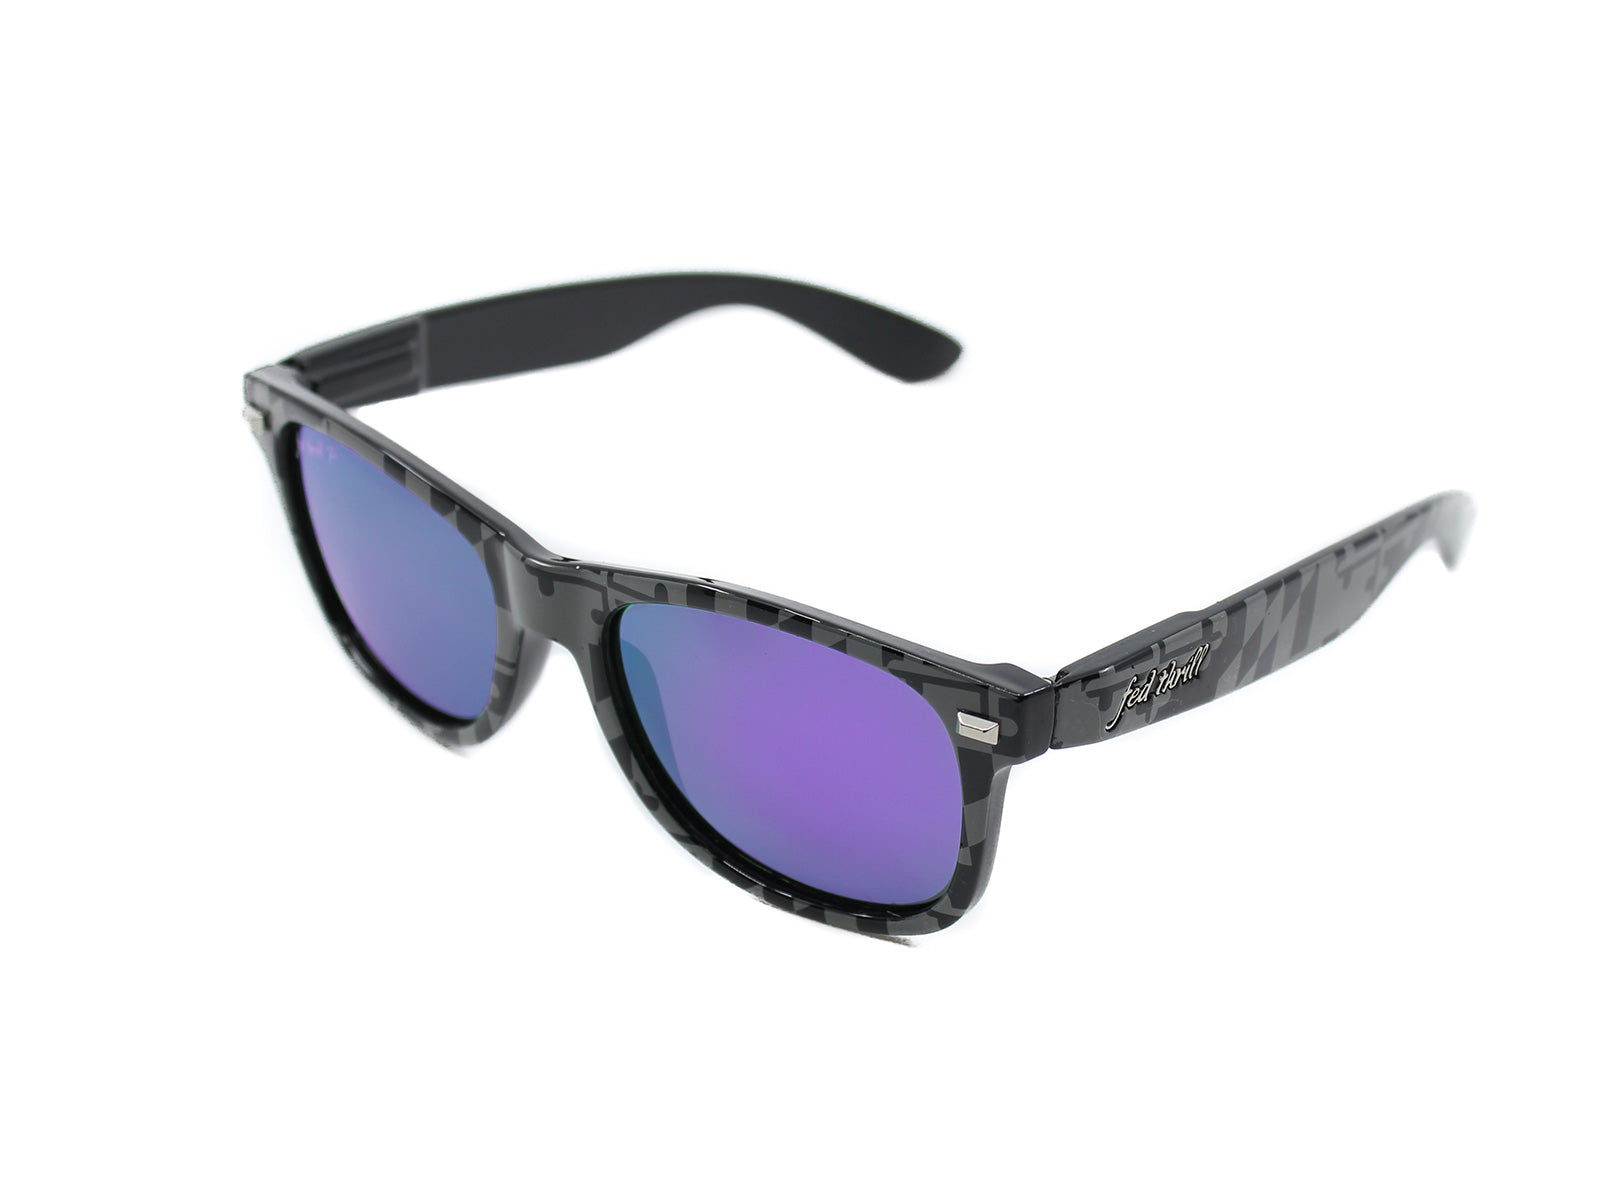 Fultons - MD Stealths III: Black & Gray MD Flag / Purple Polarized